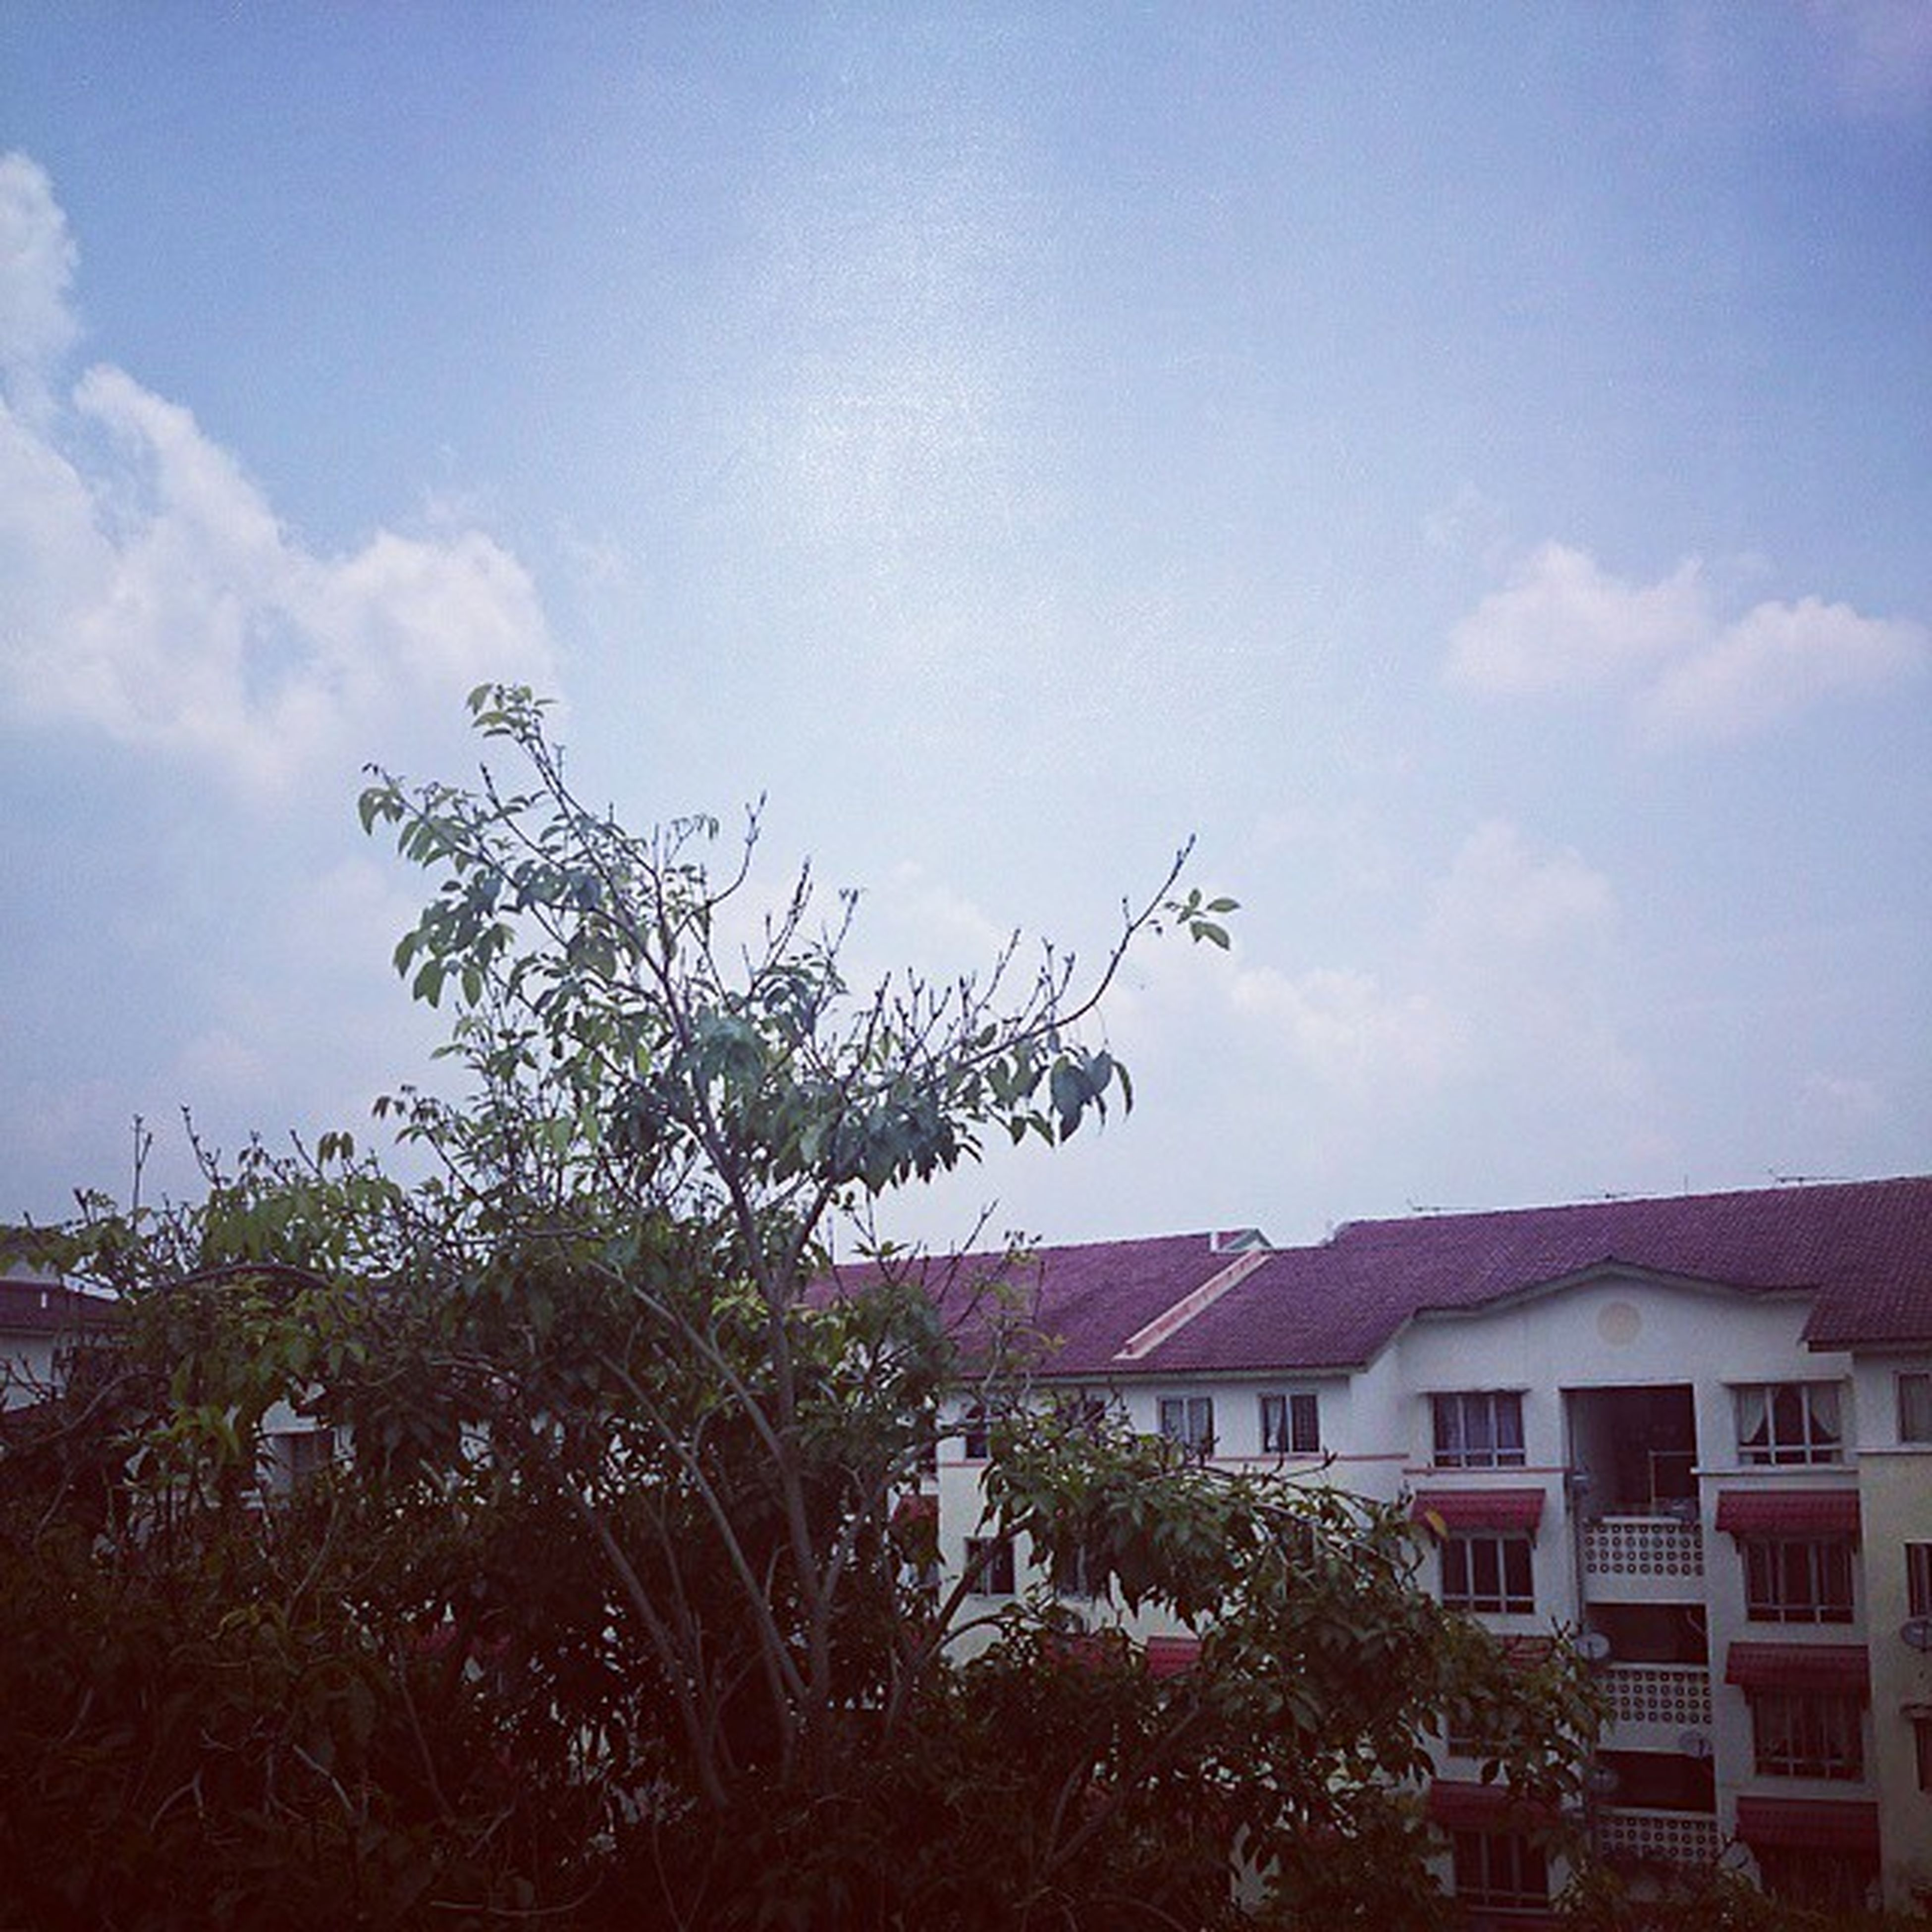 building exterior, architecture, built structure, sky, tree, house, residential building, residential structure, blue, low angle view, growth, cloud, cloud - sky, day, residential district, outdoors, no people, city, nature, building